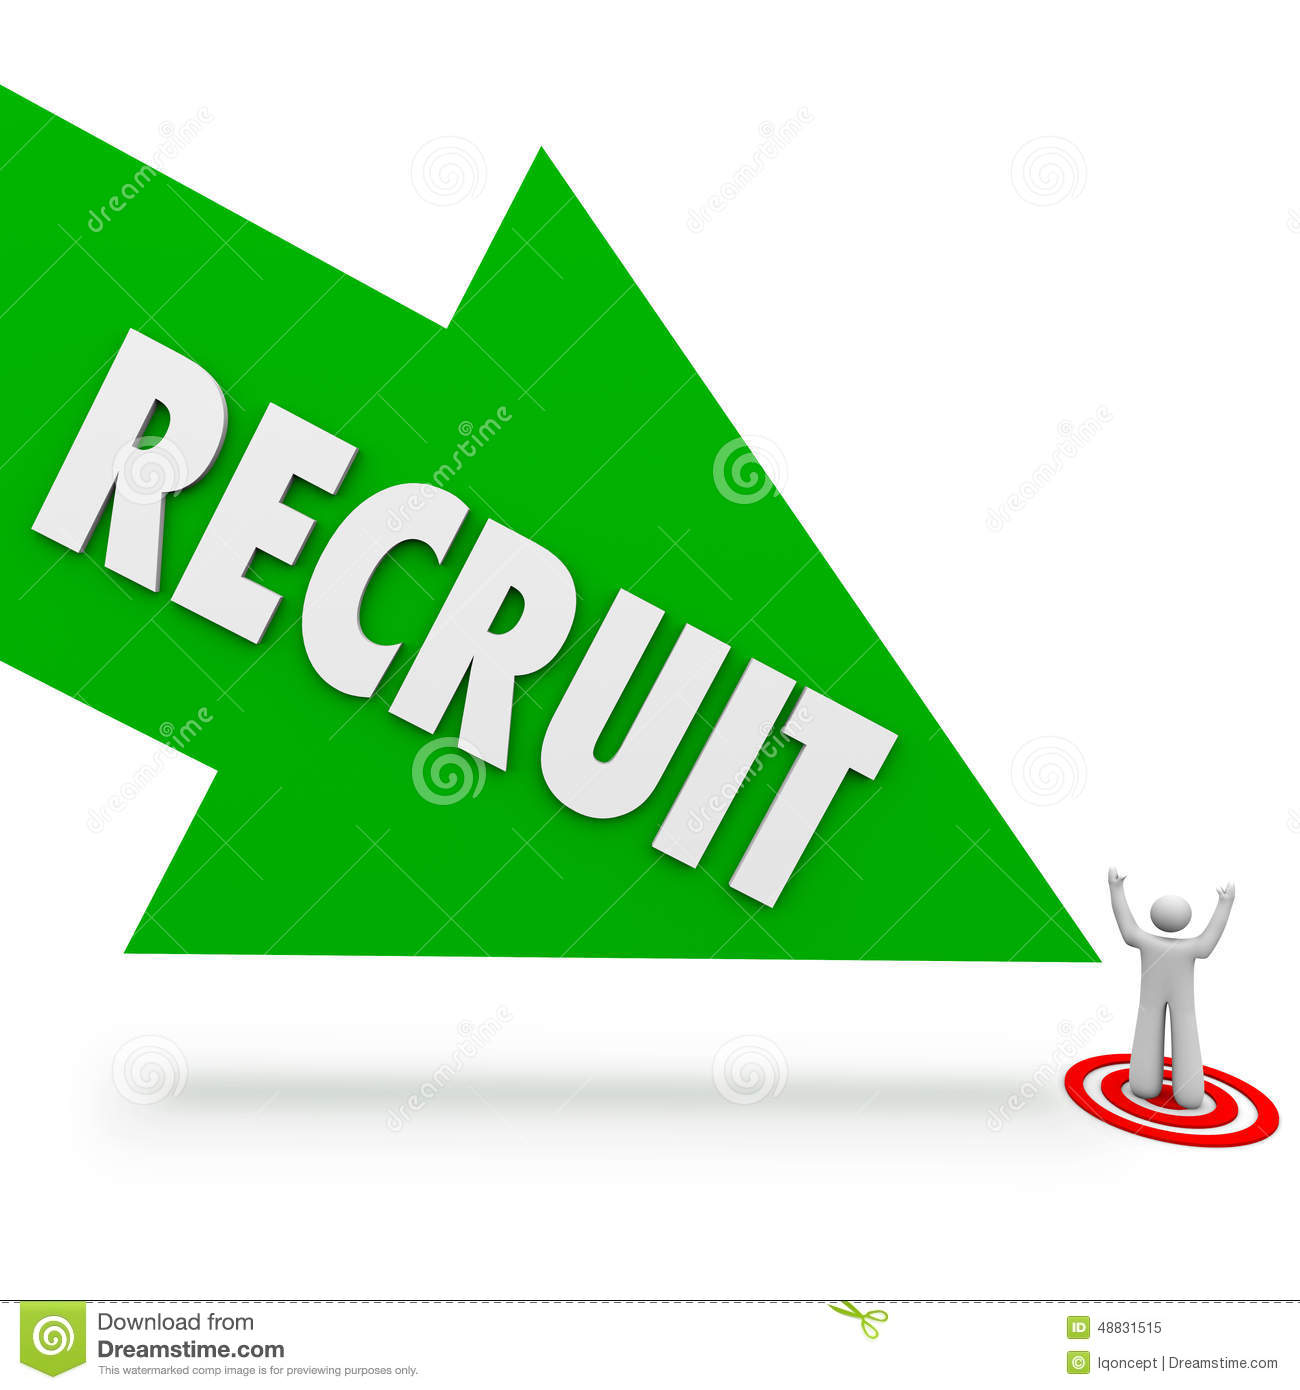 Recruit Arrow Hire Job Candidate Find Best Employee Stock